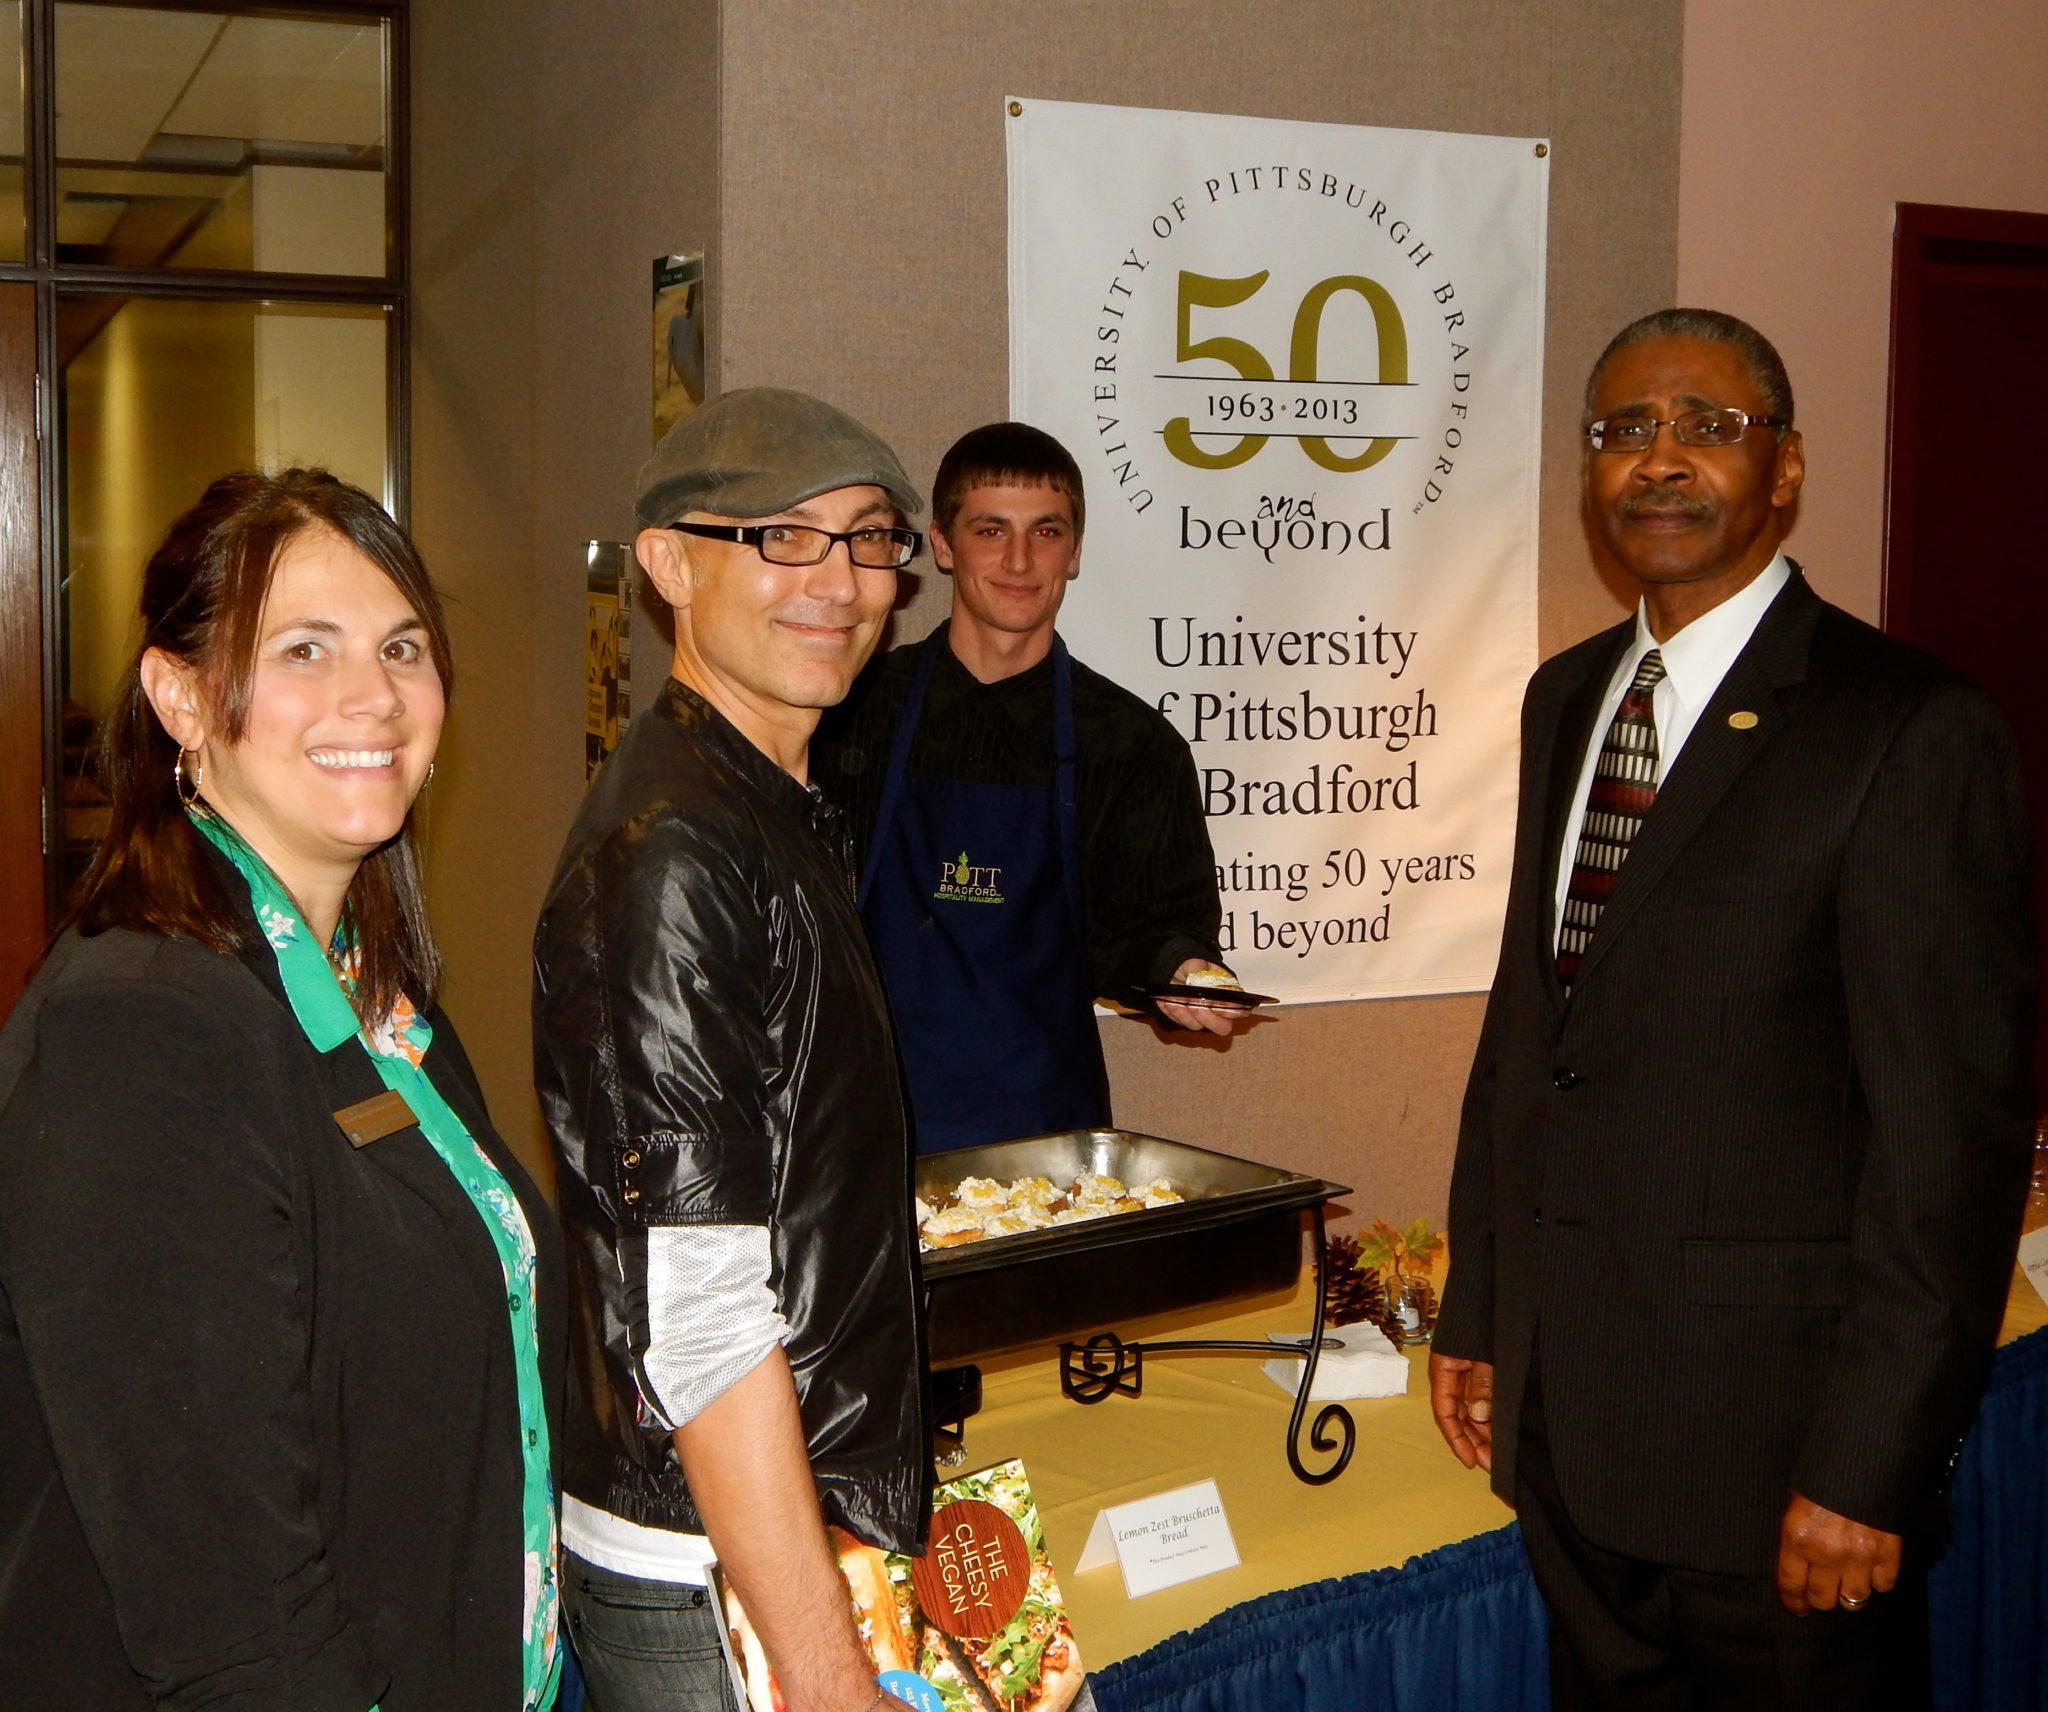 Here I am enjoying the Cheesy Vegan buffet prepared by the Hospitality Management Program students with Professor Jennifer Forney and University of Pittsburgh at Bradford President, Dr. Livingston Alexander